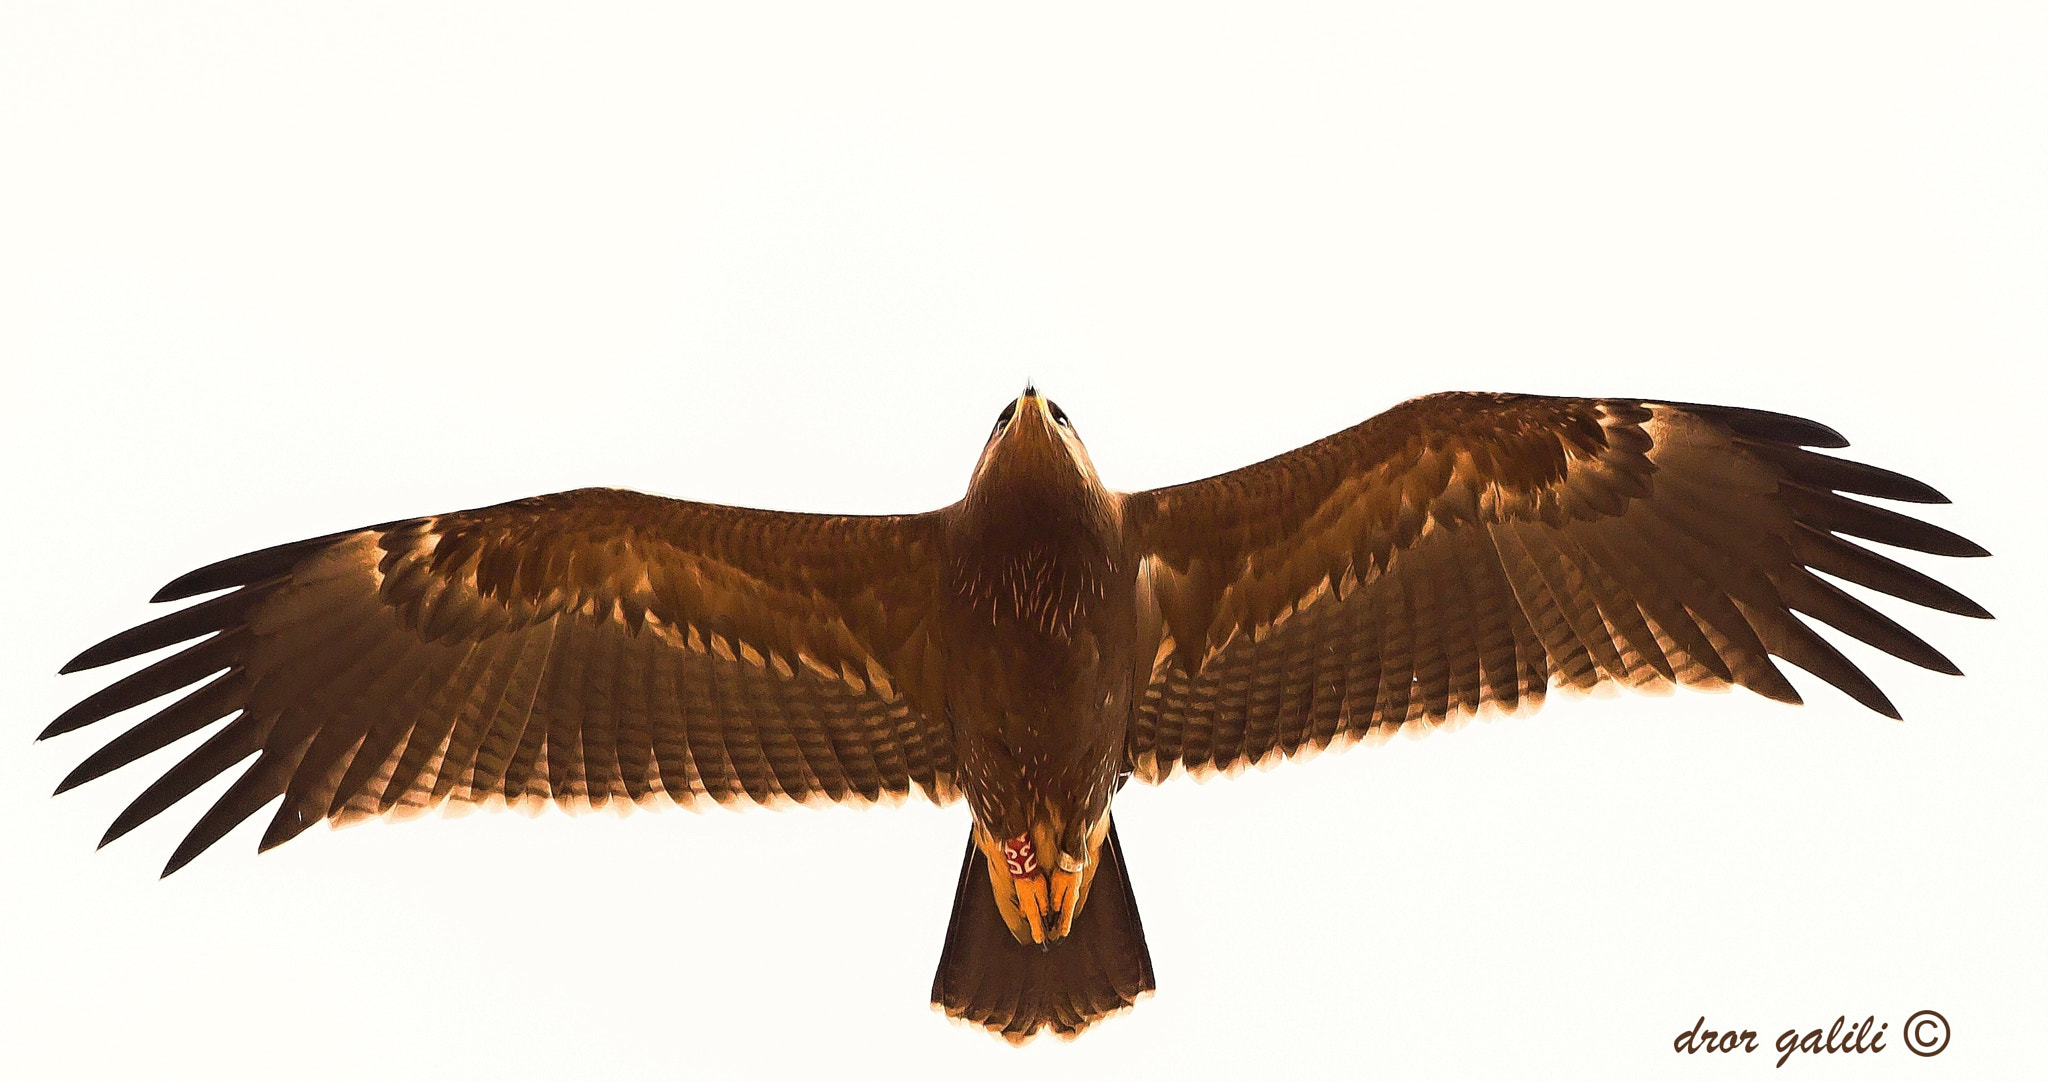 Photograph lesser spotted eagle-hula valy.israel/ by dror galili on 500px